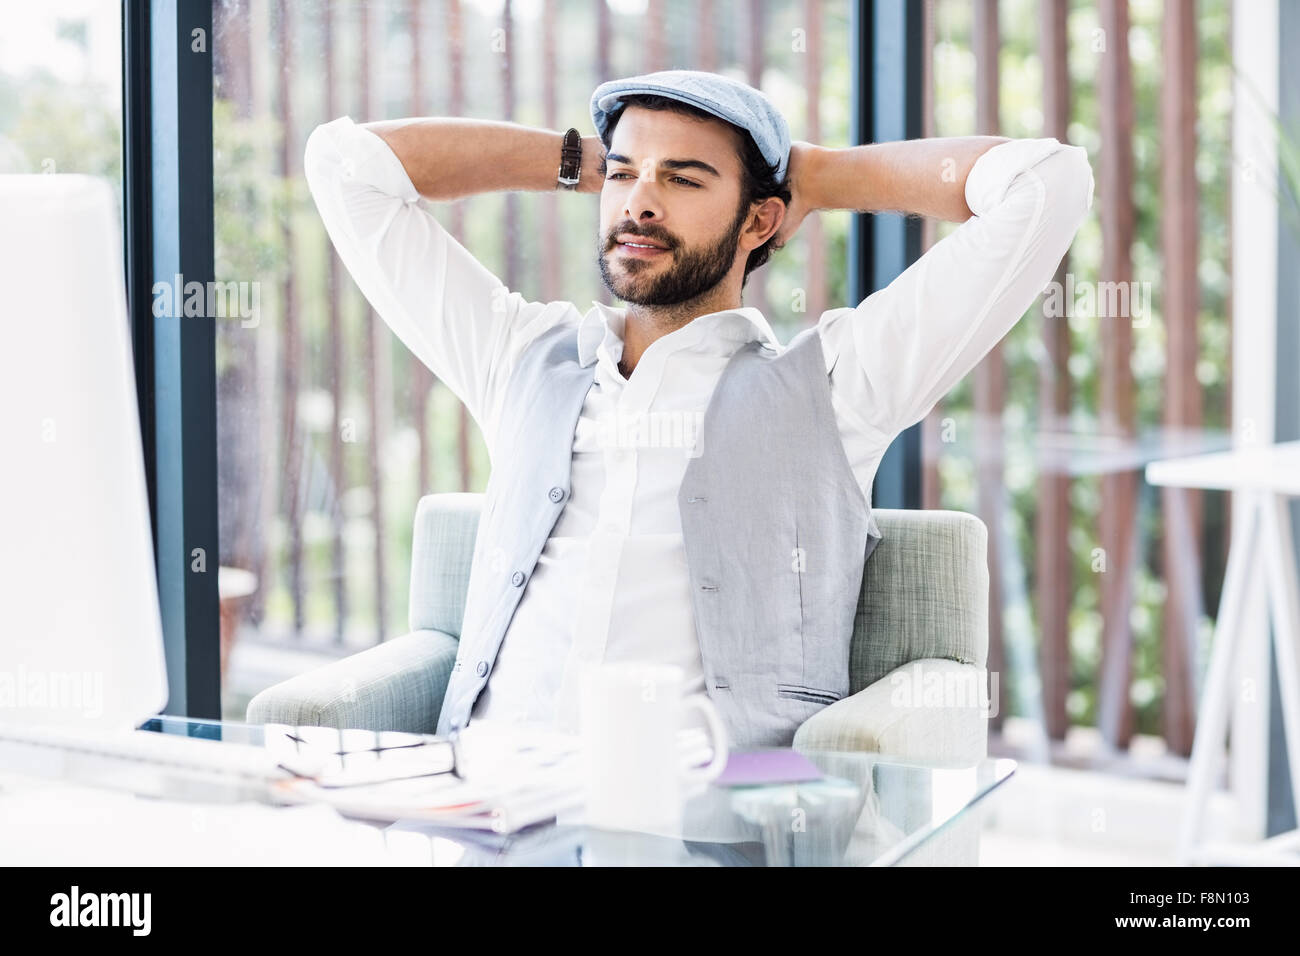 Handsome man looking at computer monitor - Stock Image